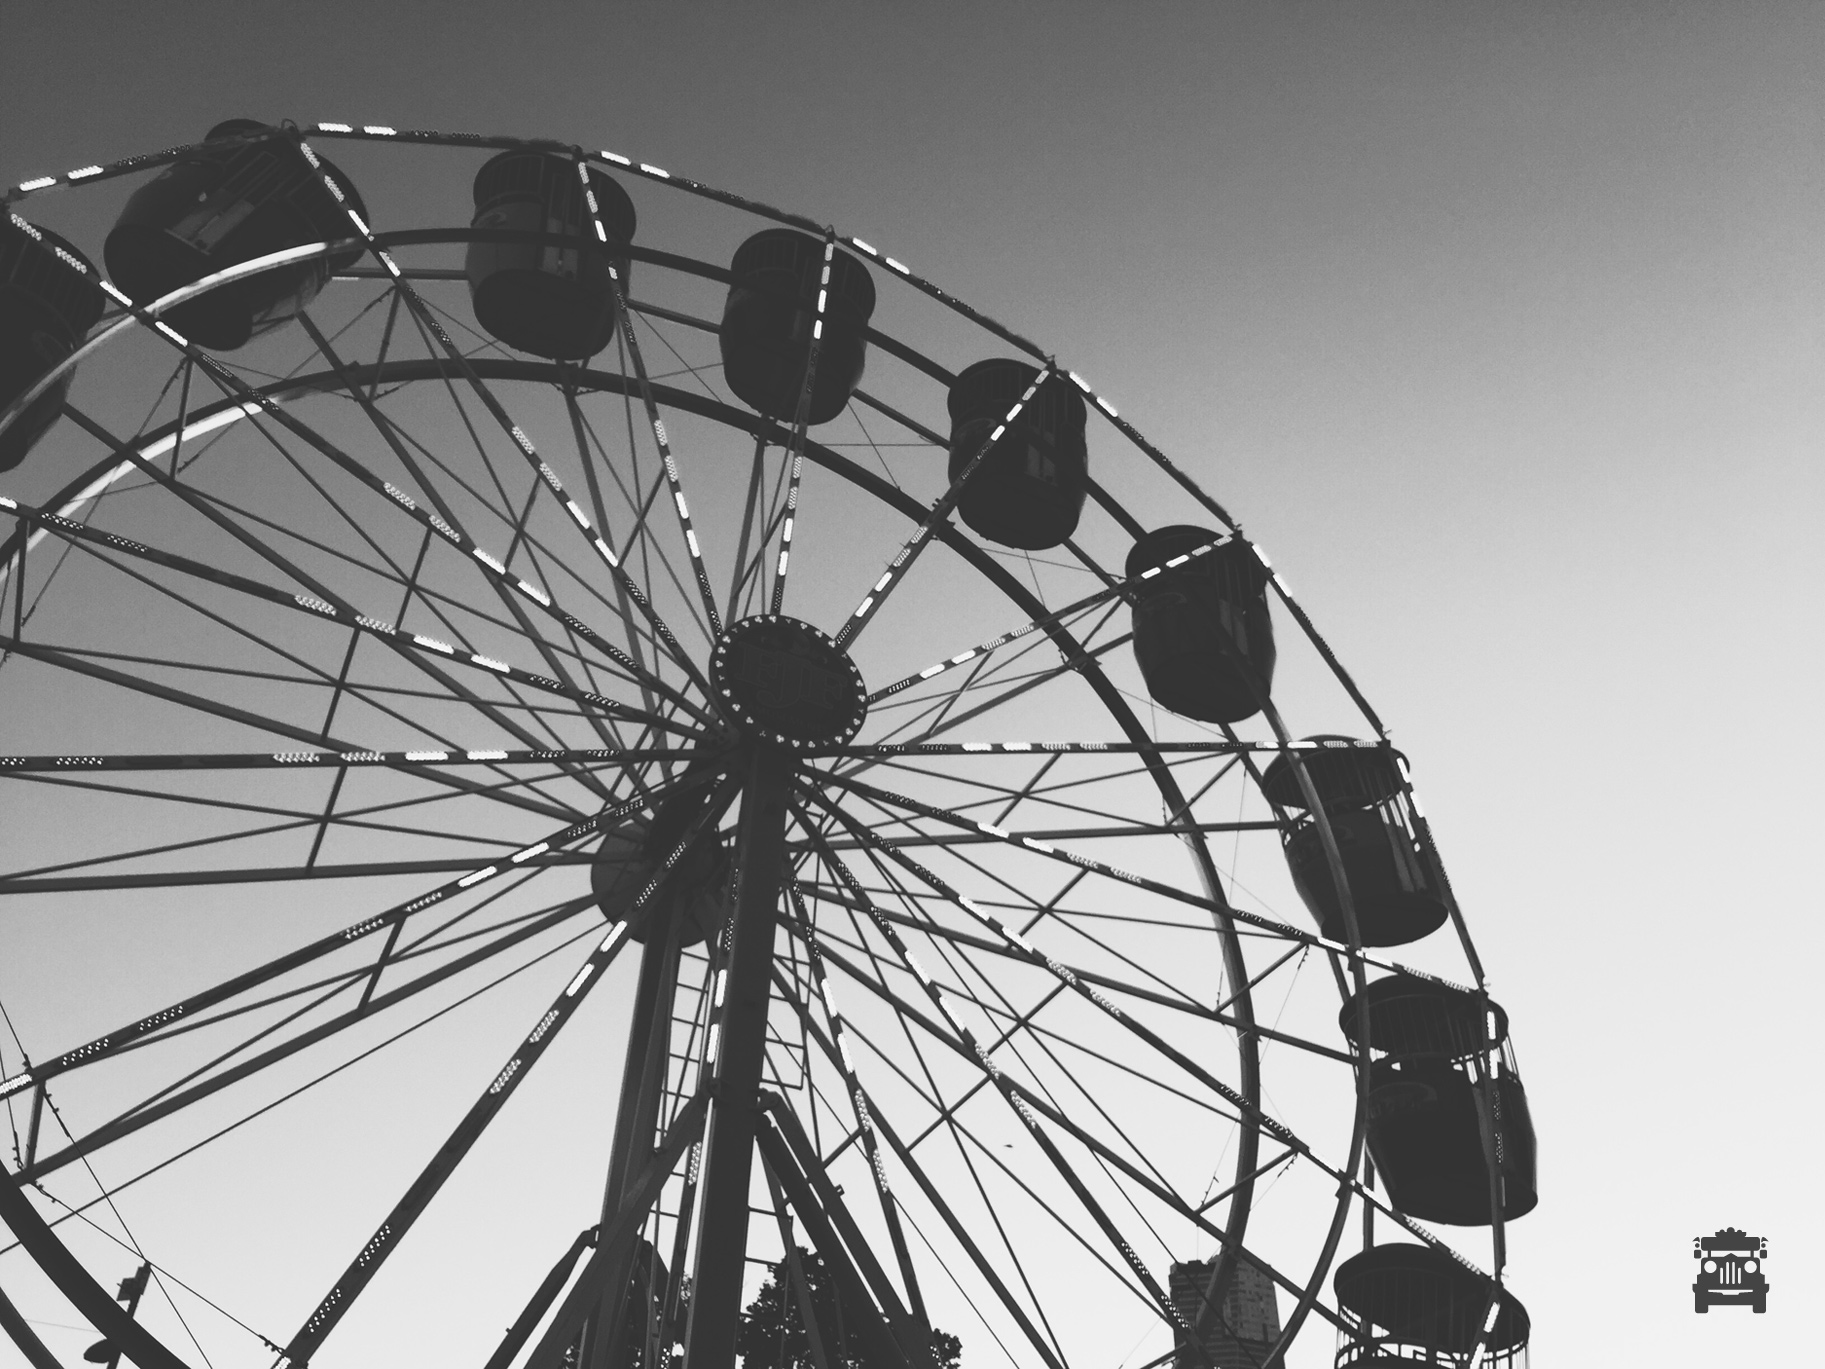 Ferris wheel would be our choice of ride to go on haha.